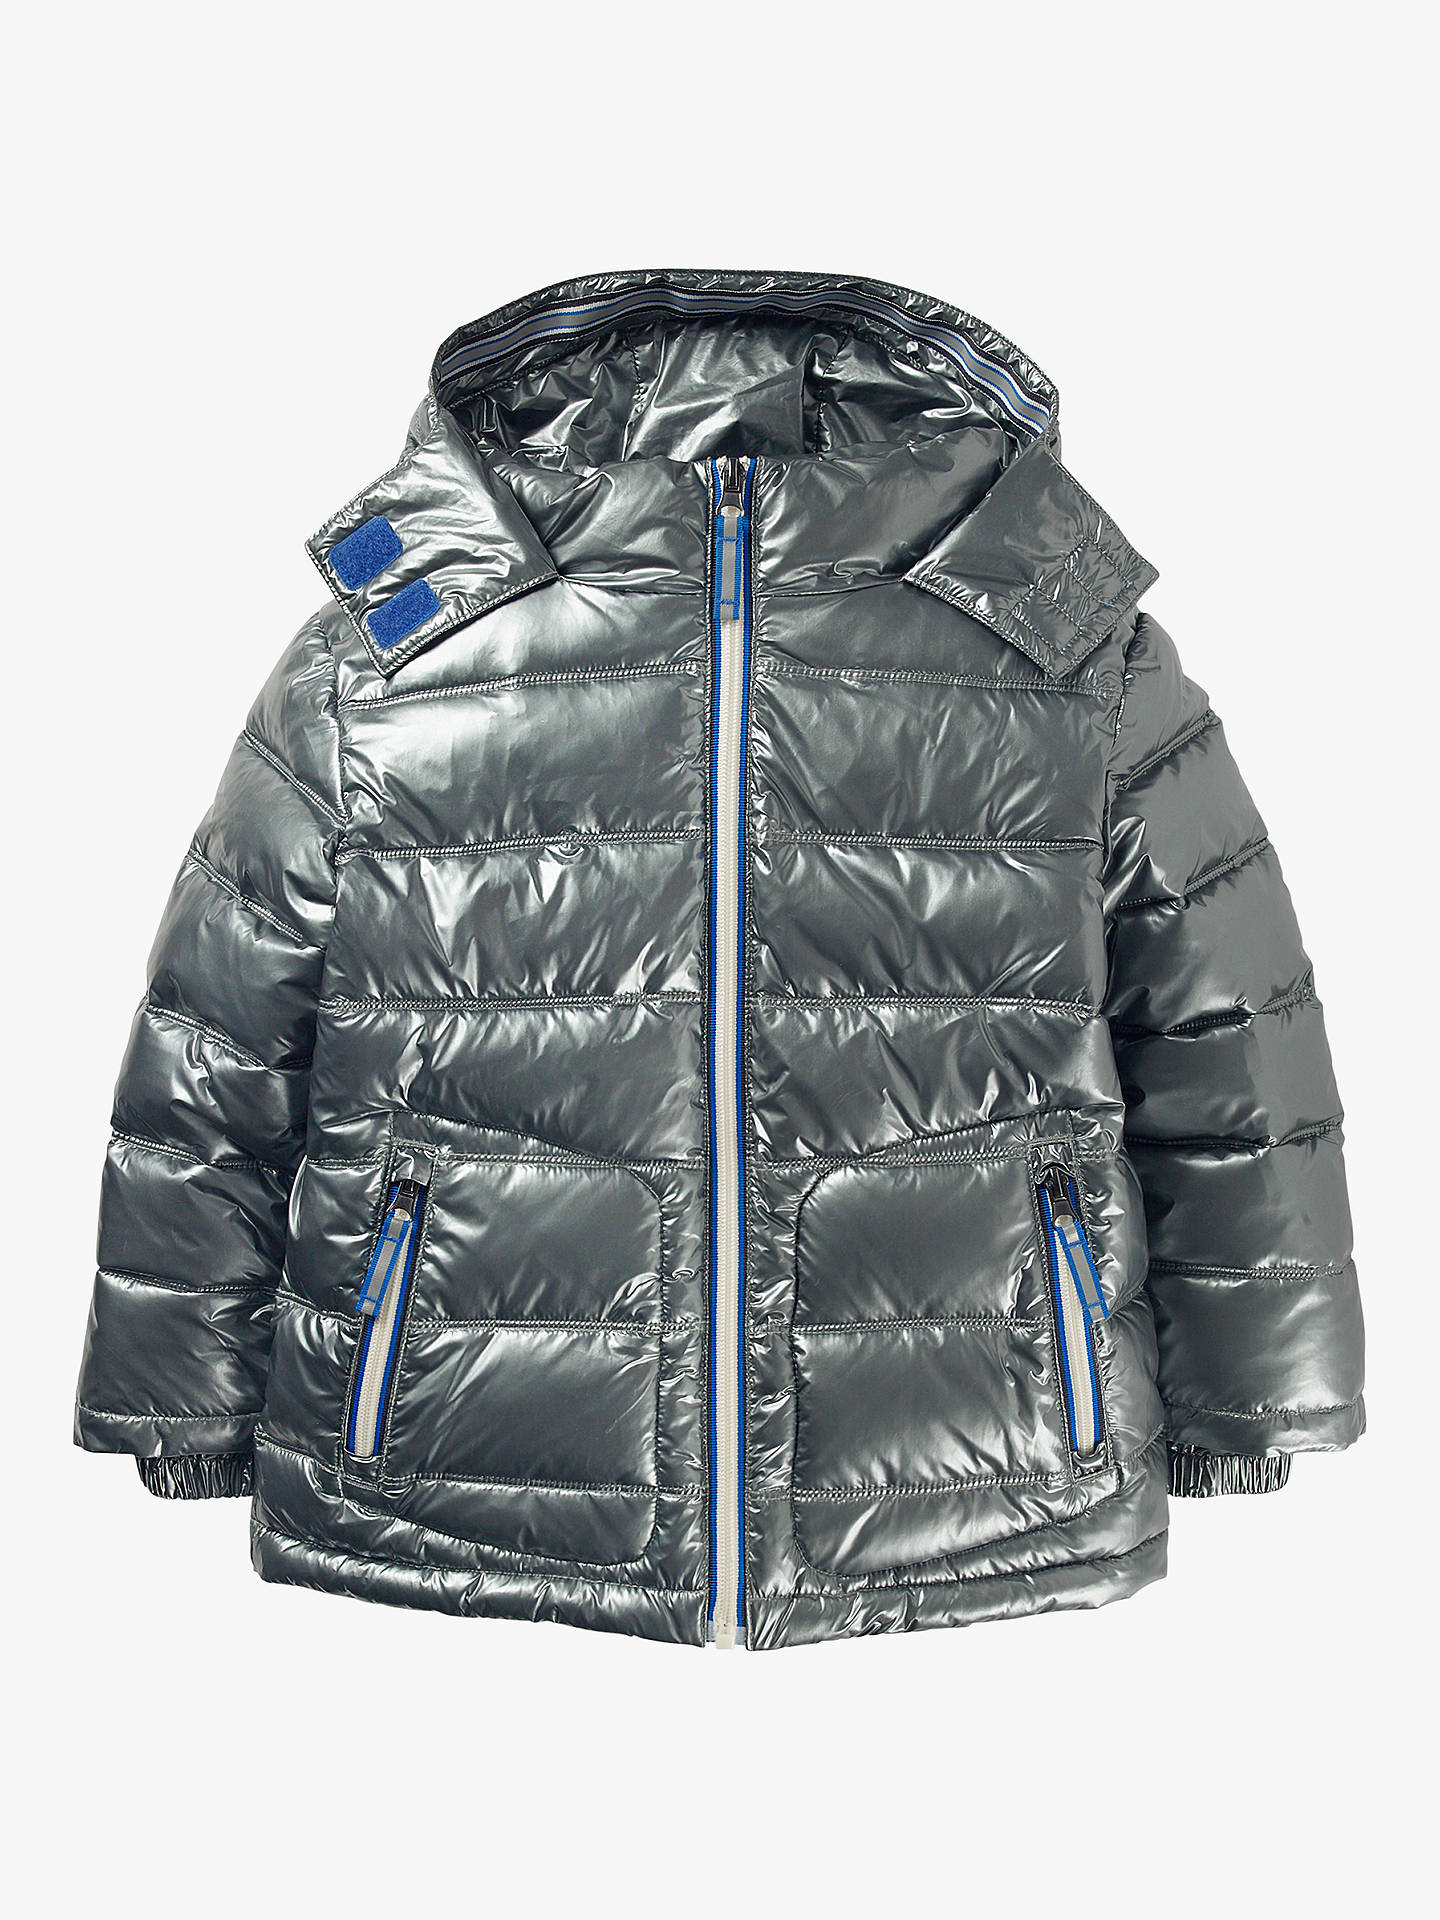 c2eecd4e8cb8a Mini Boden Boys' Padded Jacket, Metallic at John Lewis & Partners